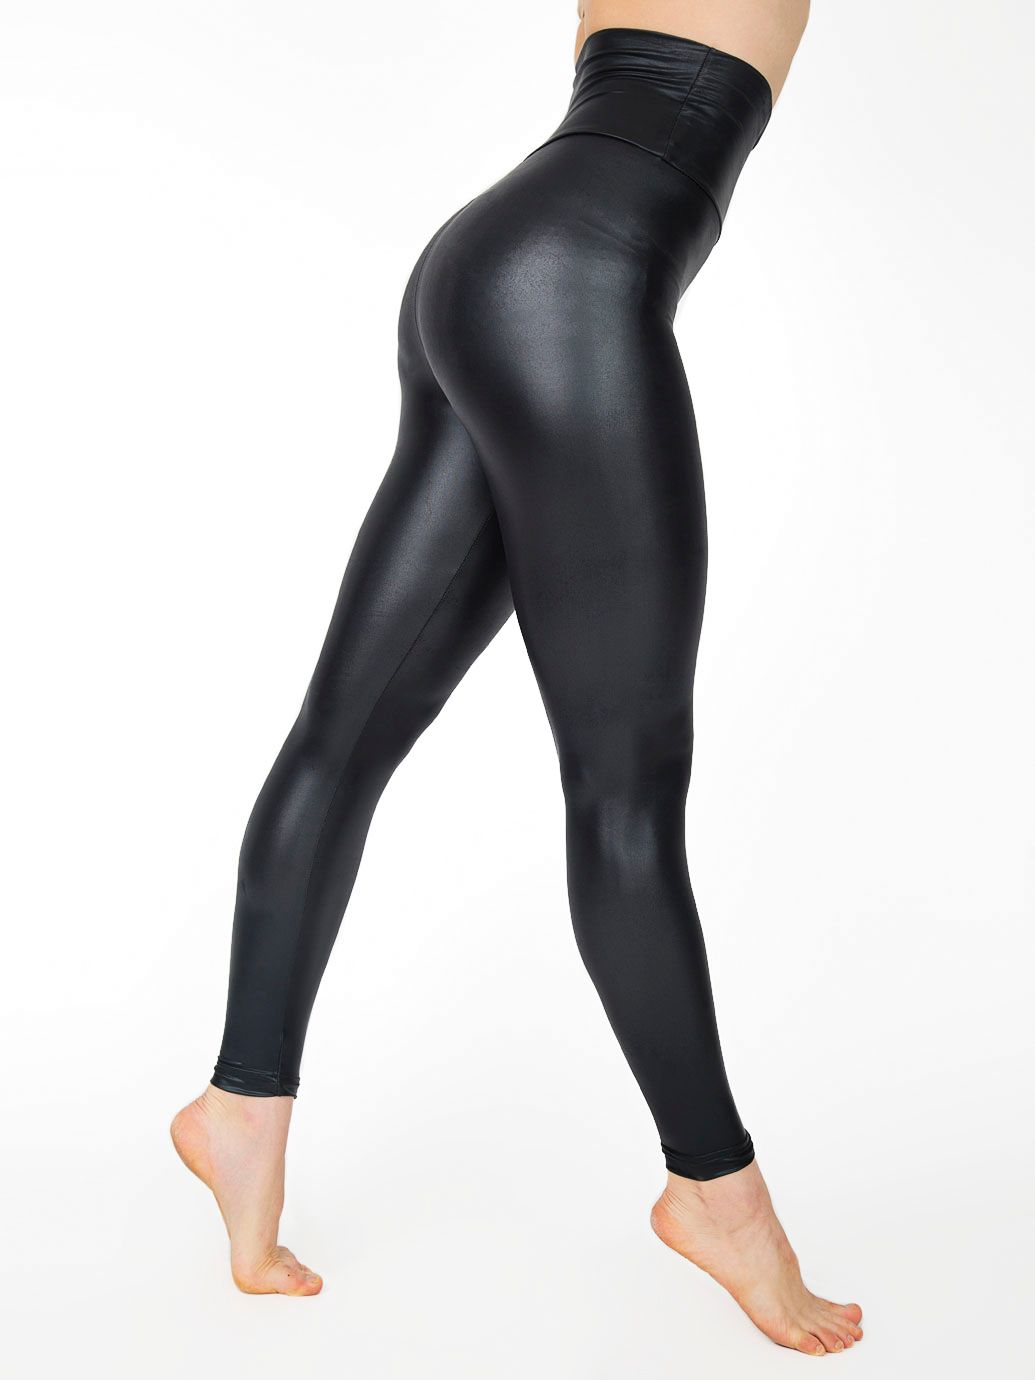 leggings � alysalovely